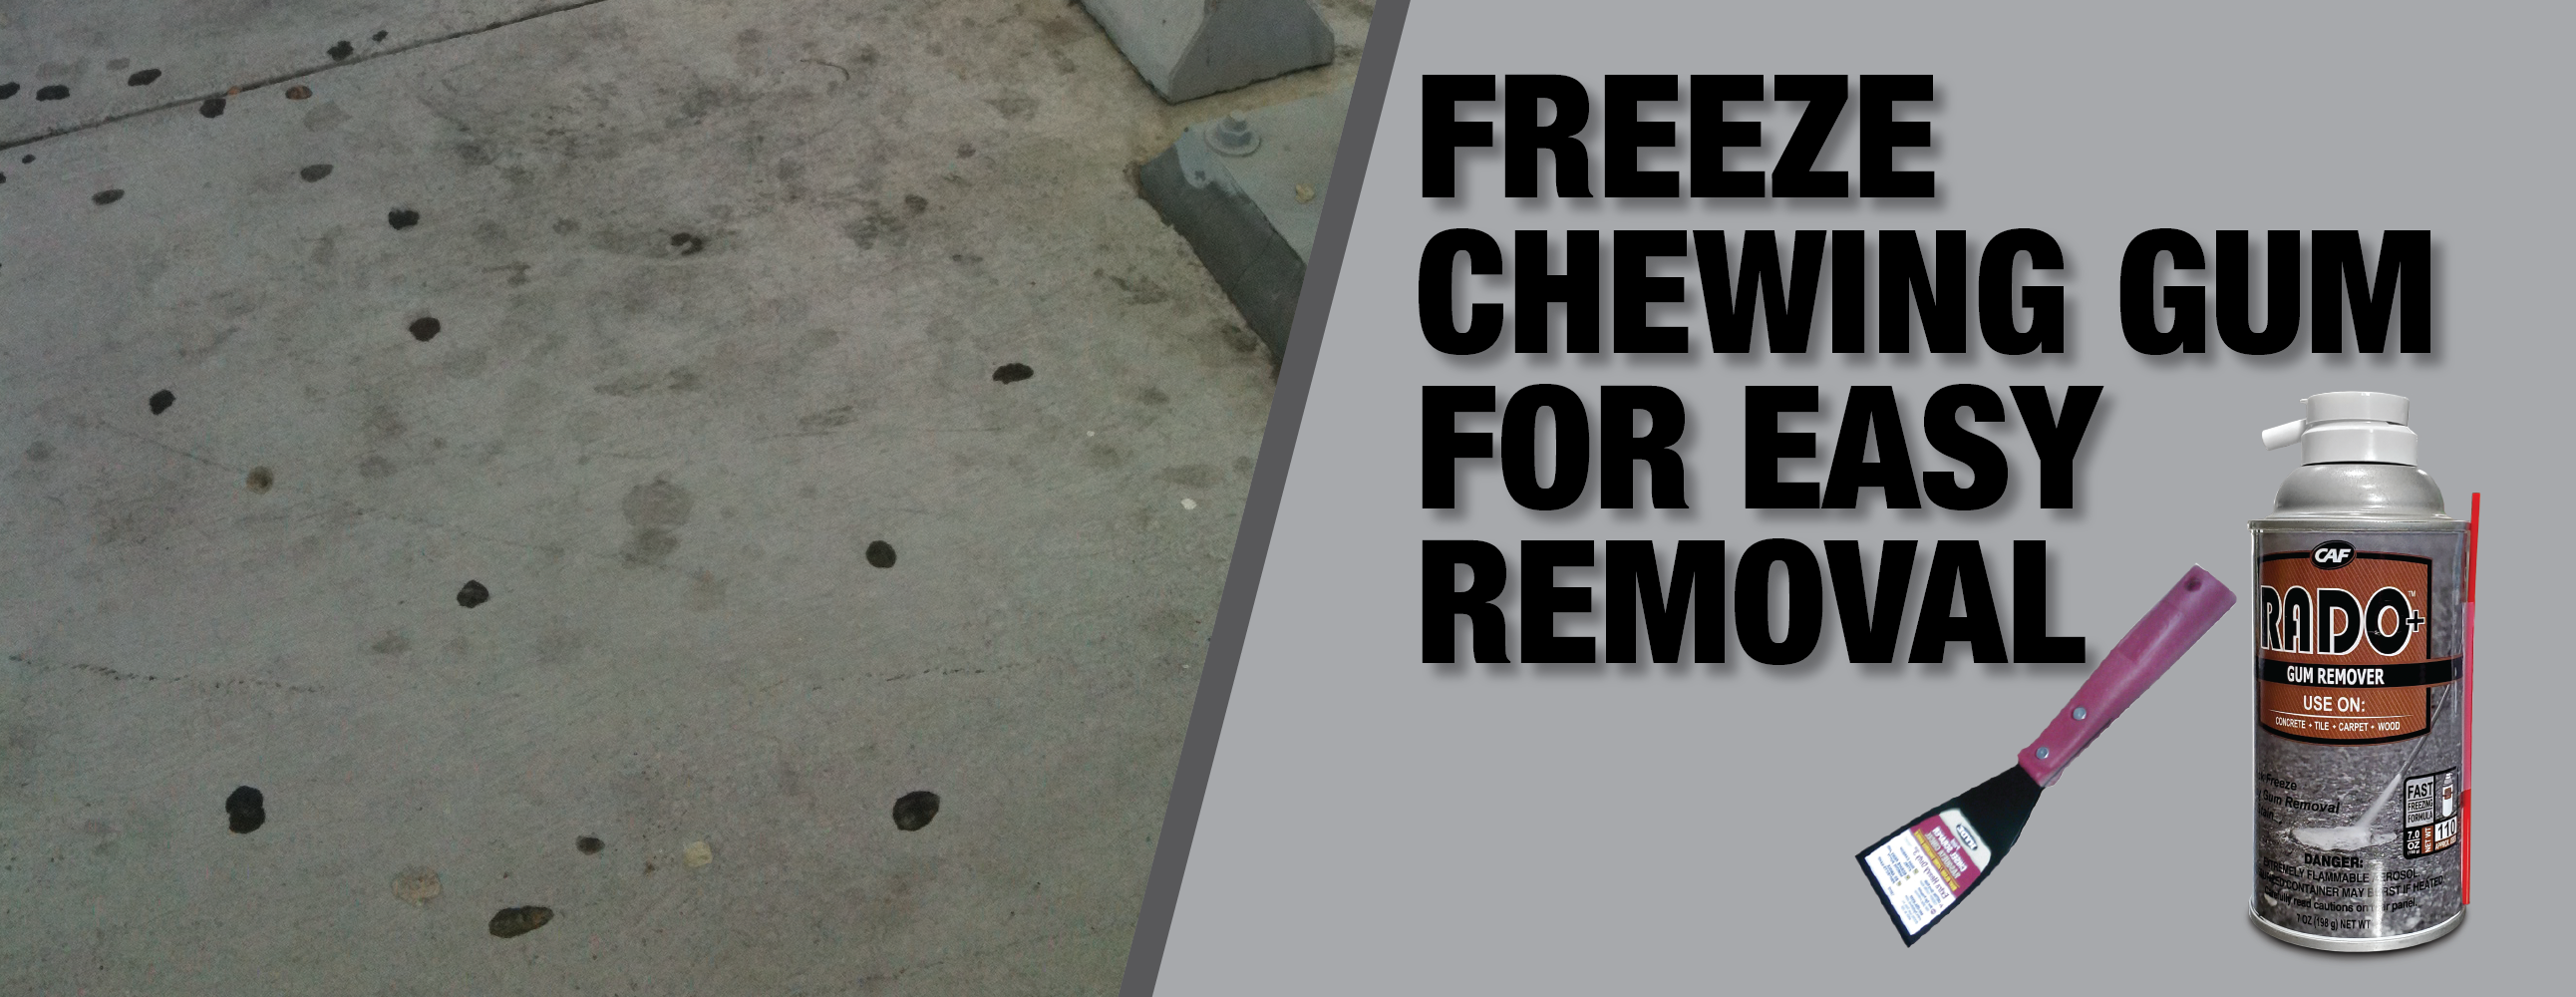 Chewing Gum Remover: No more sticky mess on concrete!